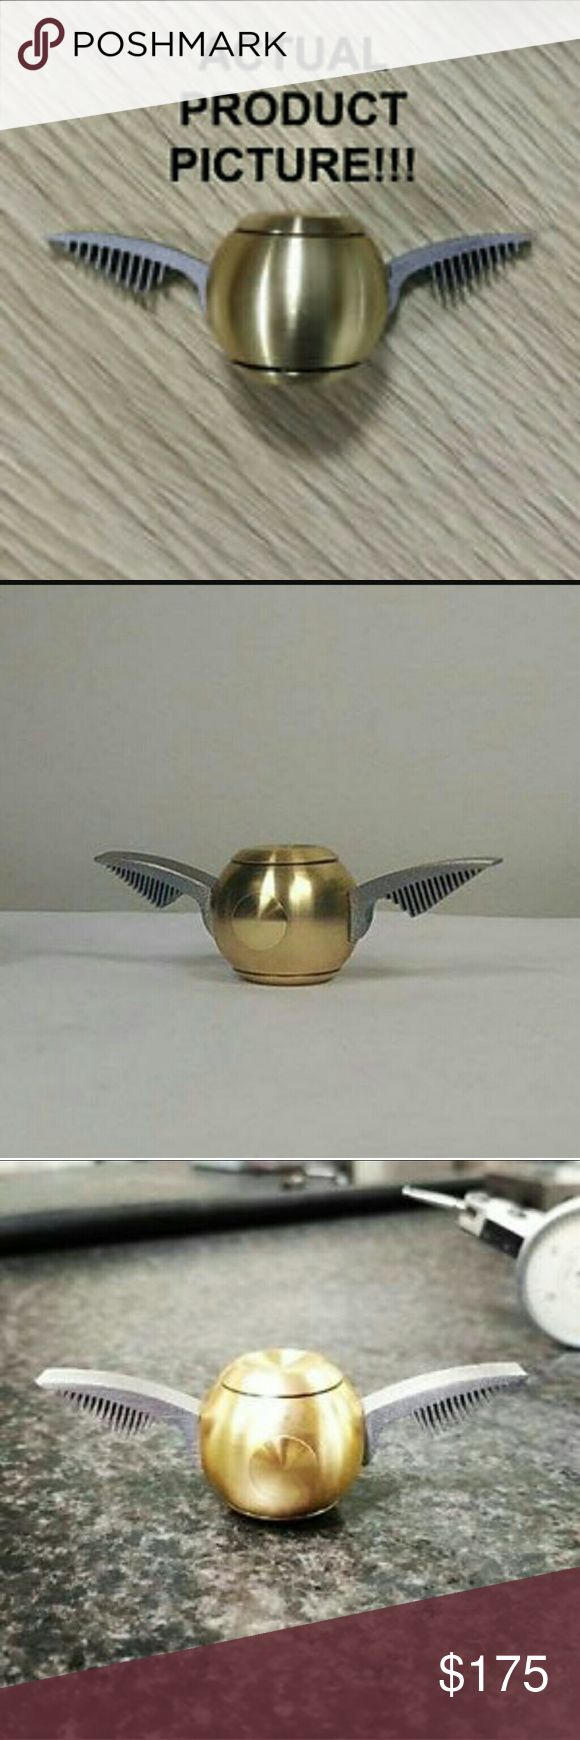 Golden Snitch Harry Potter Fidget Spinner RARE EXTREMELY HARD TO FIND Golden Snitch Harry Potter Edition fidget spinner; finally brought too life.   Anyone who's a fan and watched the classic Harry Potter films all remember the golden snitch and how bad you wish you could've catched it yourself.  This is the chance of a lifetime too own a piece of that memory and feel it in real life.   Very high quality gold plating, fidget spinner is high quality as well.Brand new in packaging. Free…